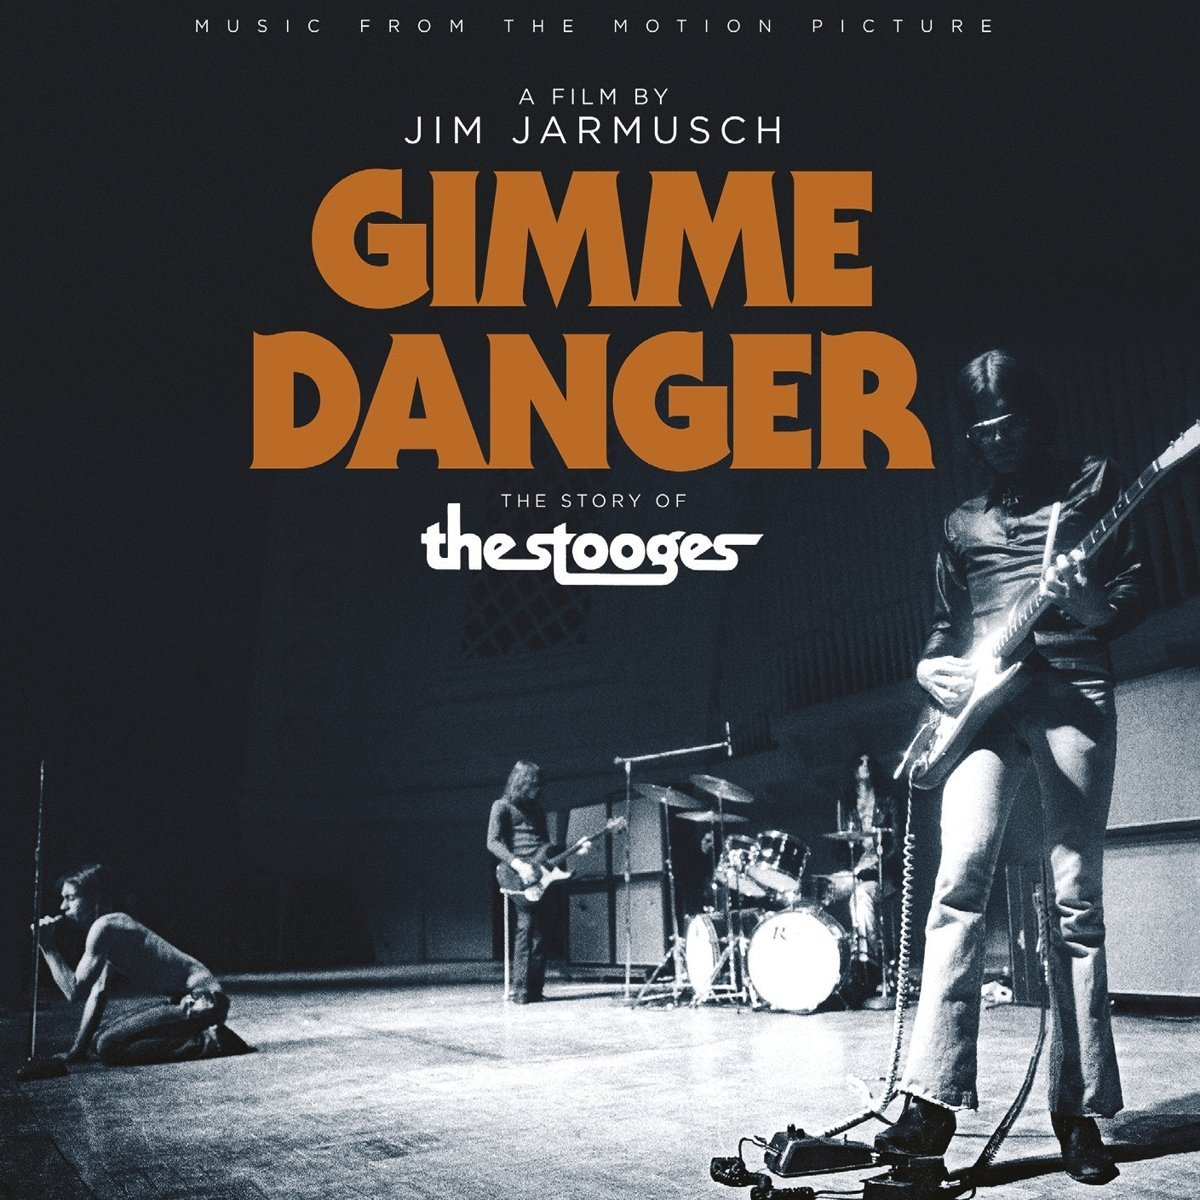 The Stooges - Gimme Danger: Music From The Motion Picture [Soundtrack]